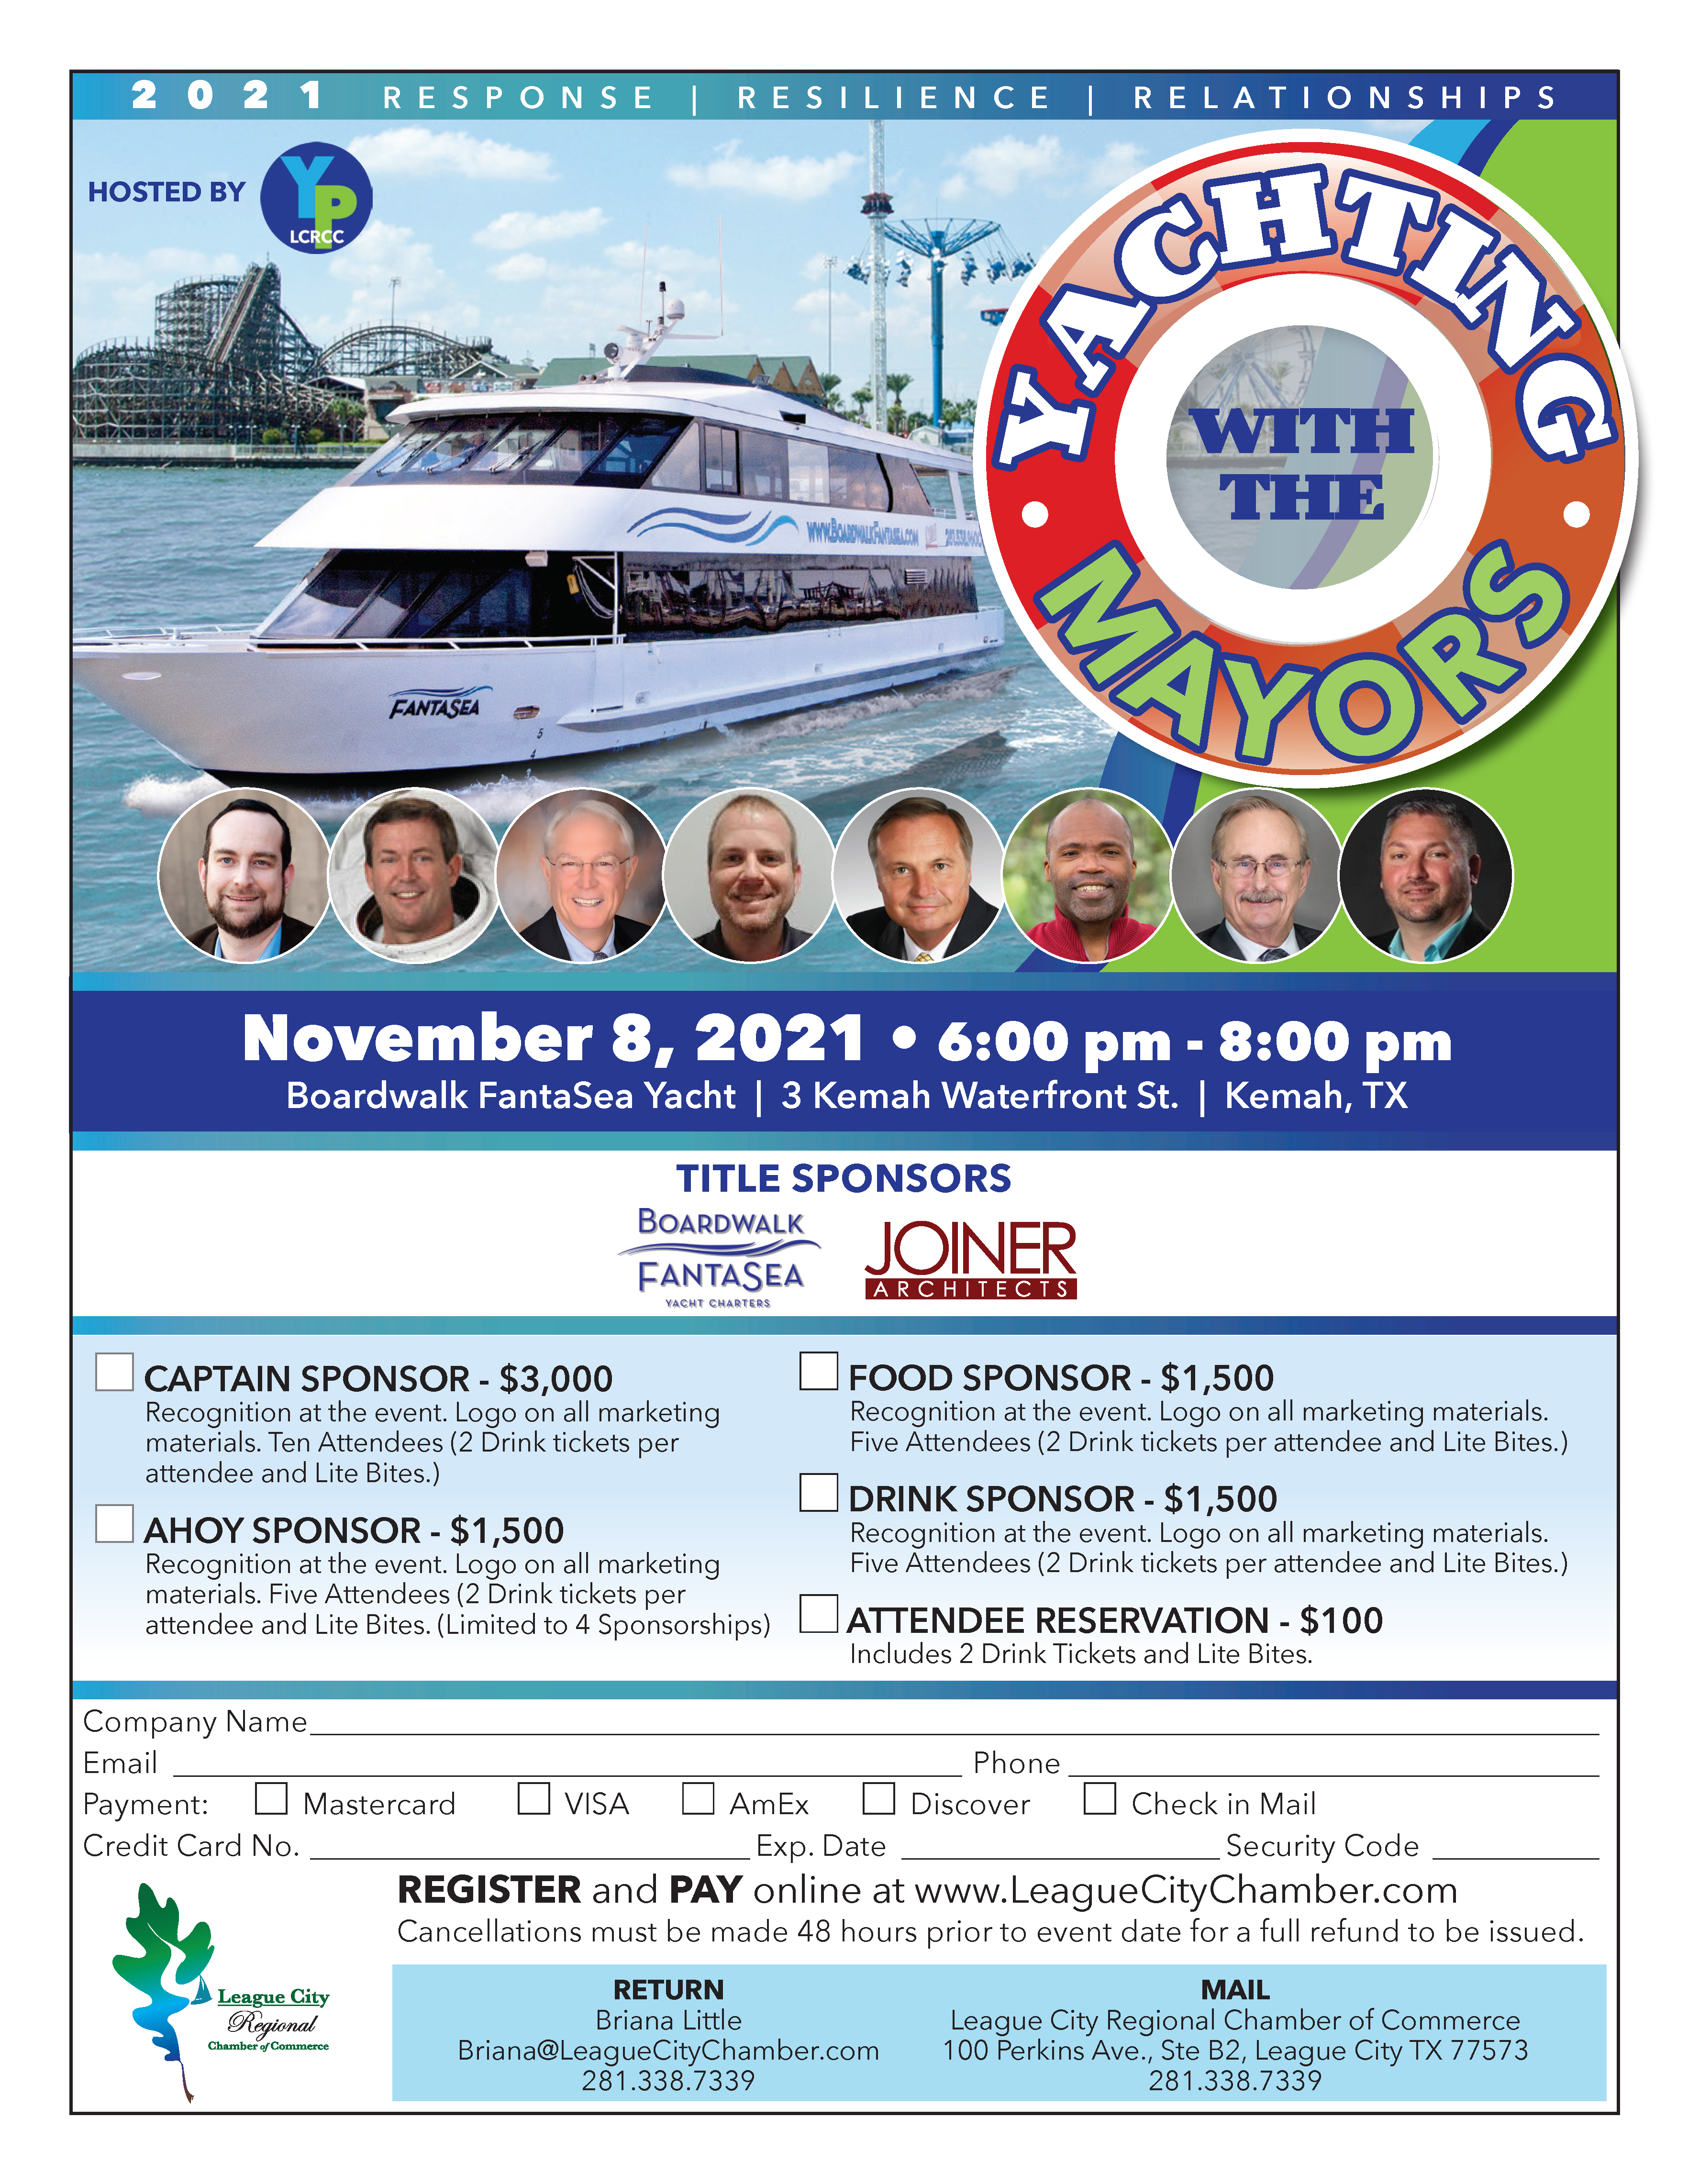 Image for PRESS RELEASE: Get ready for Yachting With the Mayors!